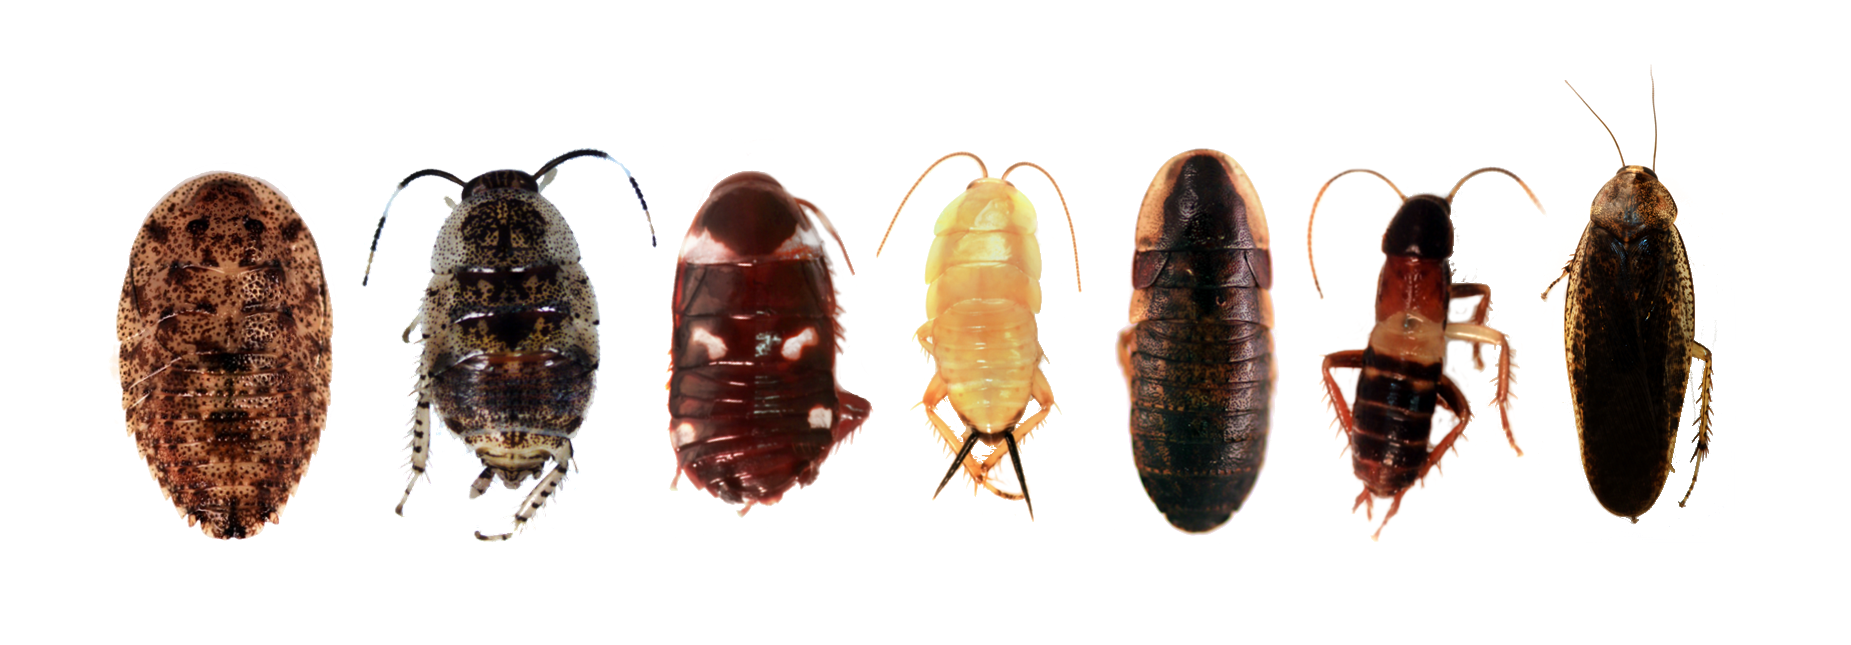 Diverse array of guyanese roaches